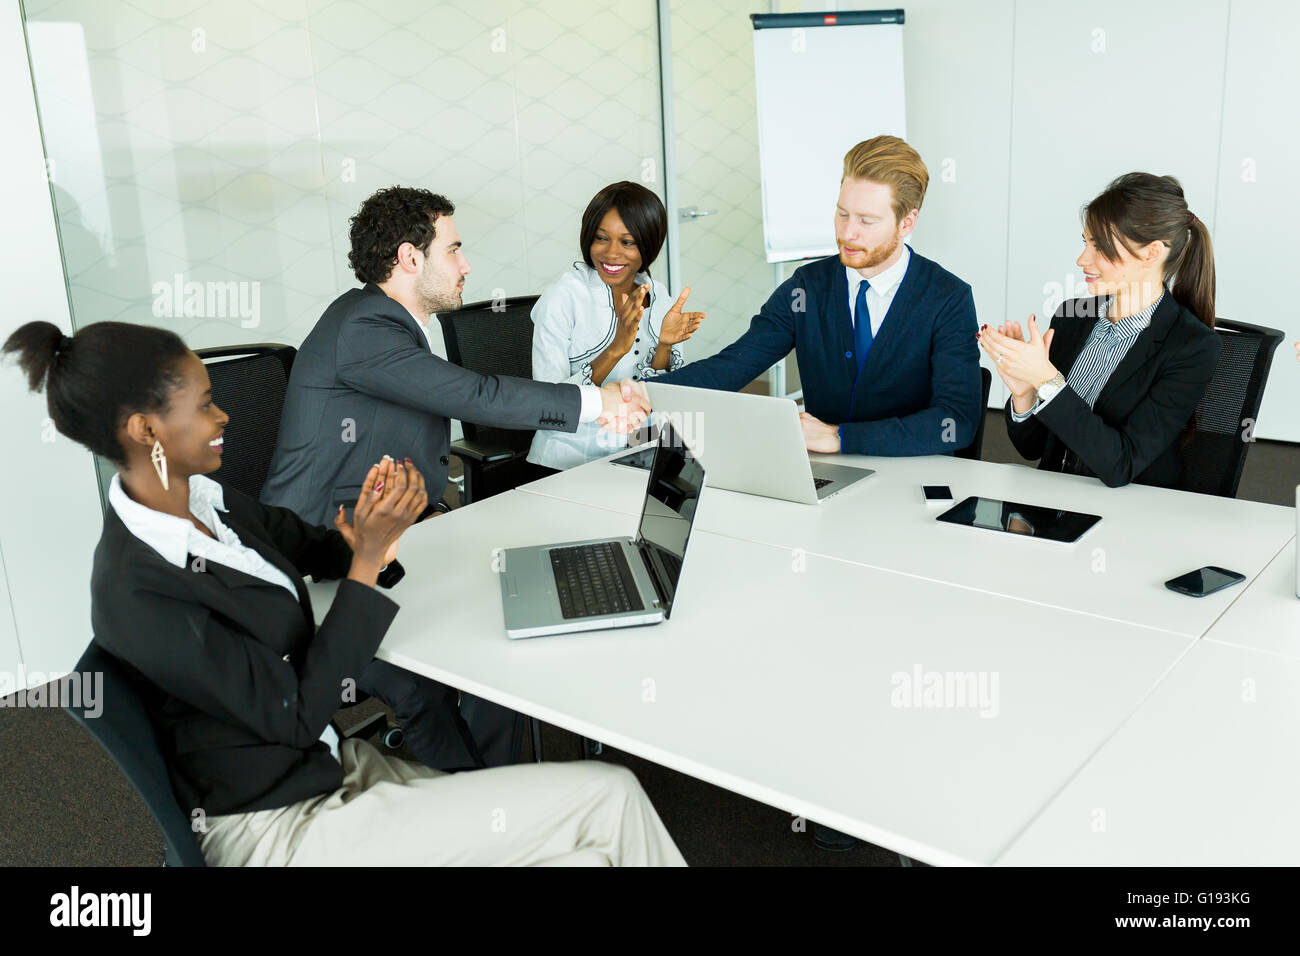 Business deal made between two businessmen in a neat office environment followed by a round of applause Stock Photo